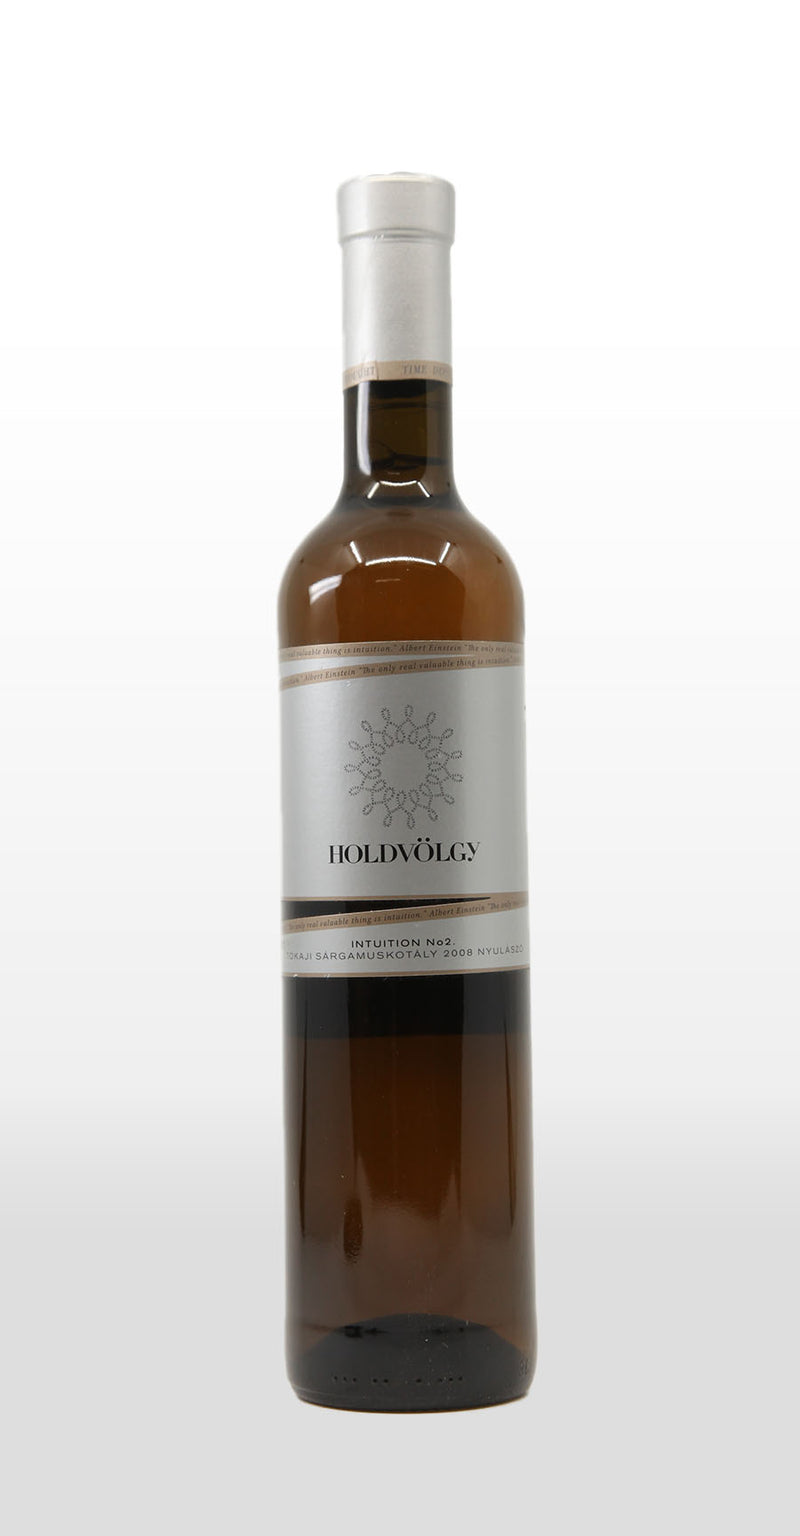 HOLDVOLGY TOKAJ INTUITION NO.2 2008 500ML